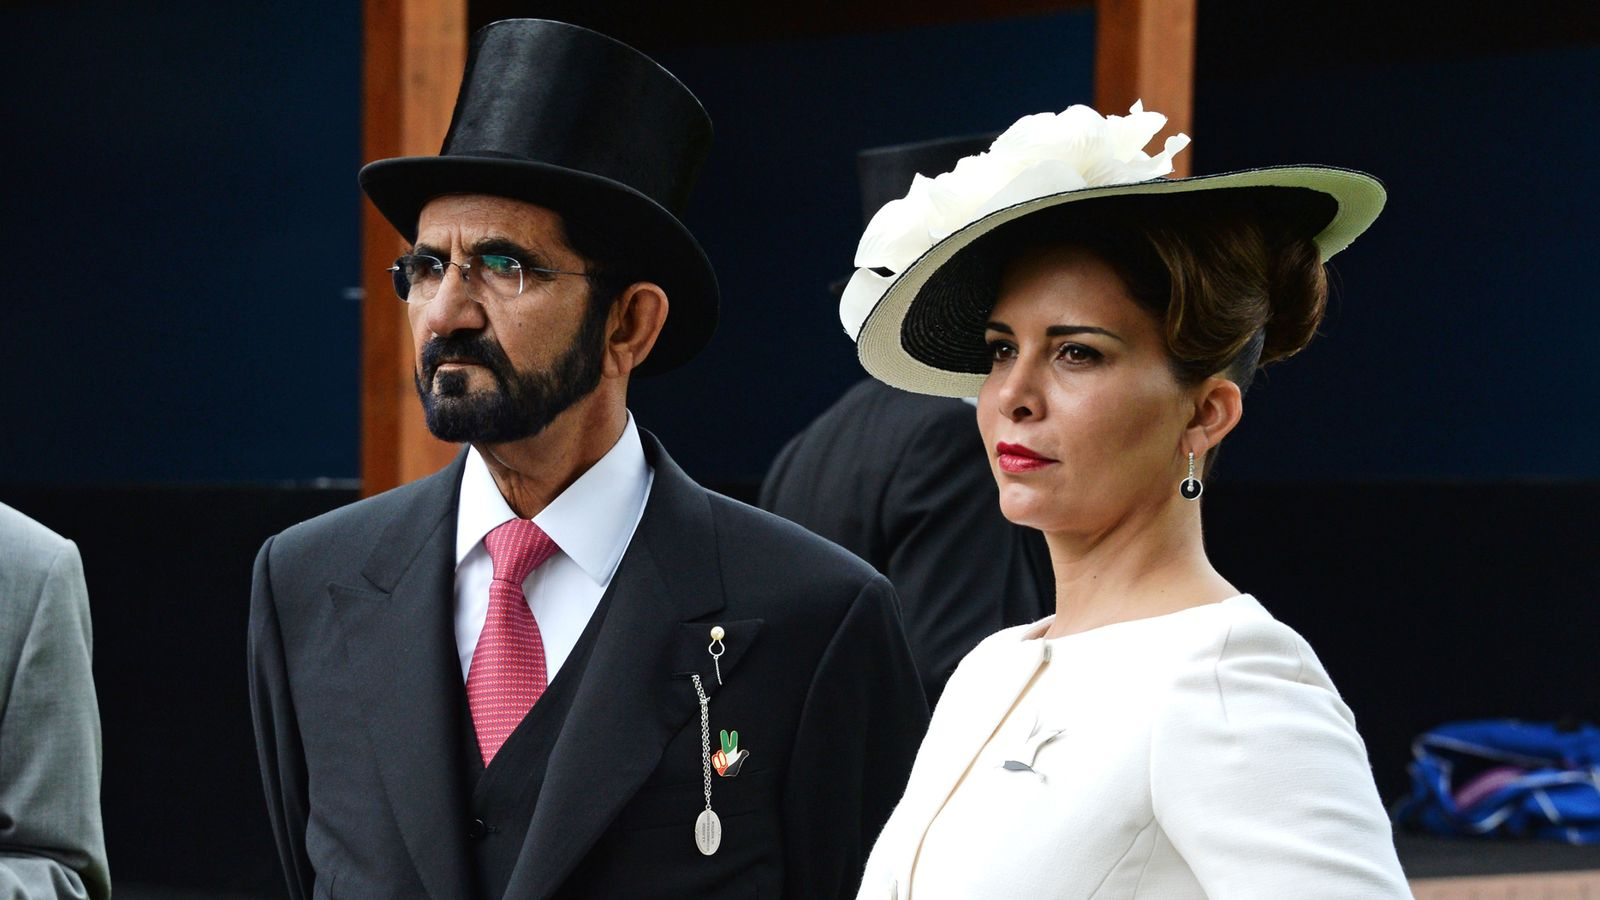 Dubai ruler's wife seeks forced marriage protection order